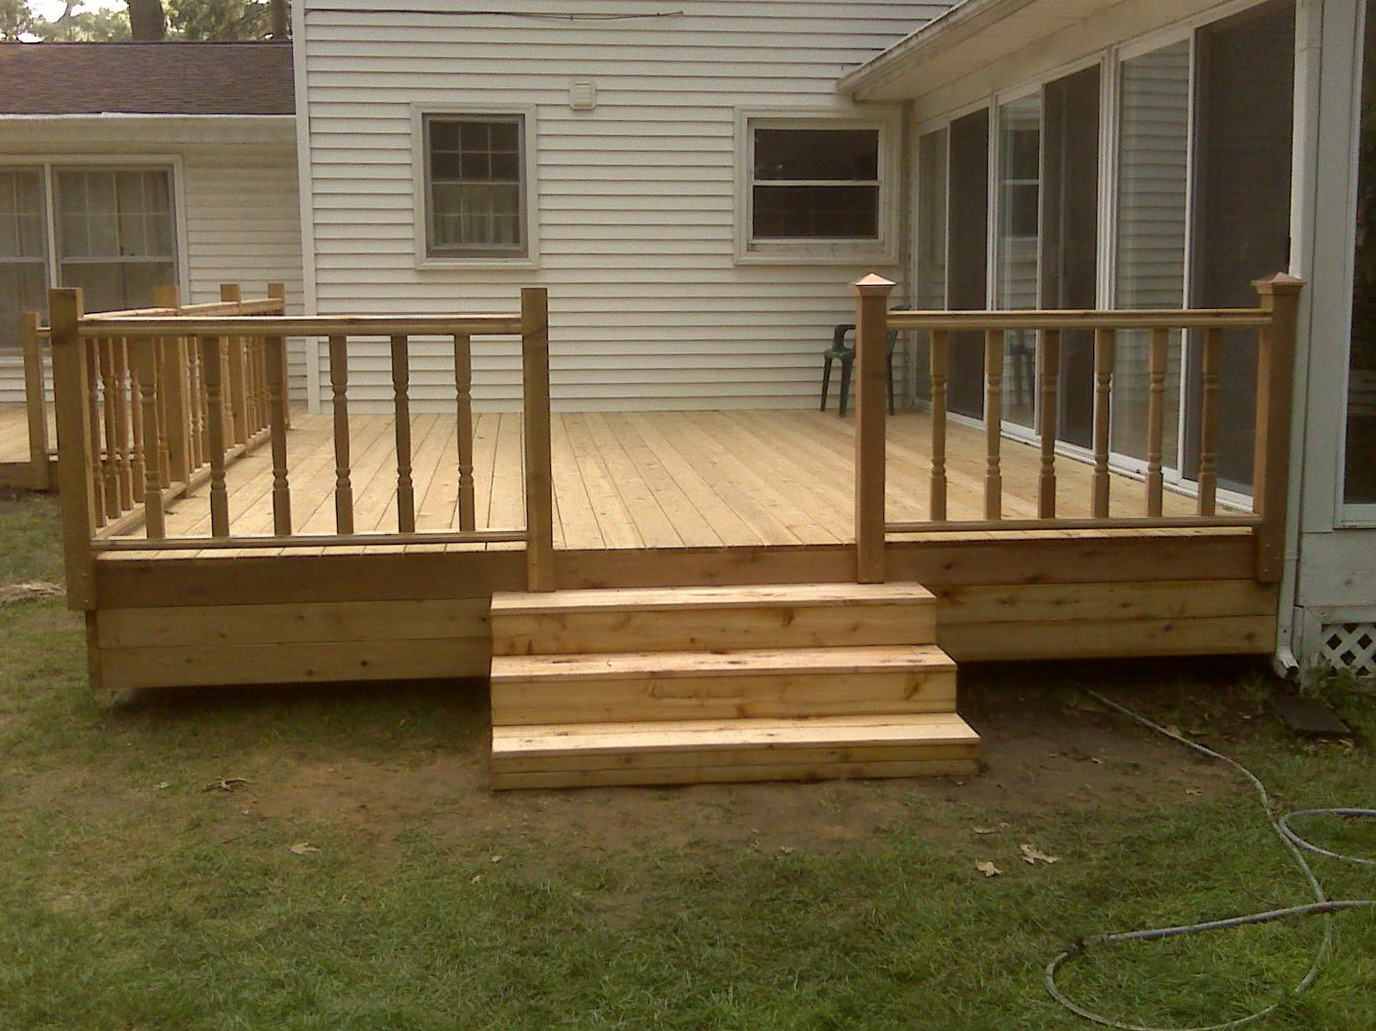 Diy Wood Deck Railing Ideas Simple Designs Plans Box Composite within 15 Clever Initiatives of How to Craft Simple Backyard Deck Ideas